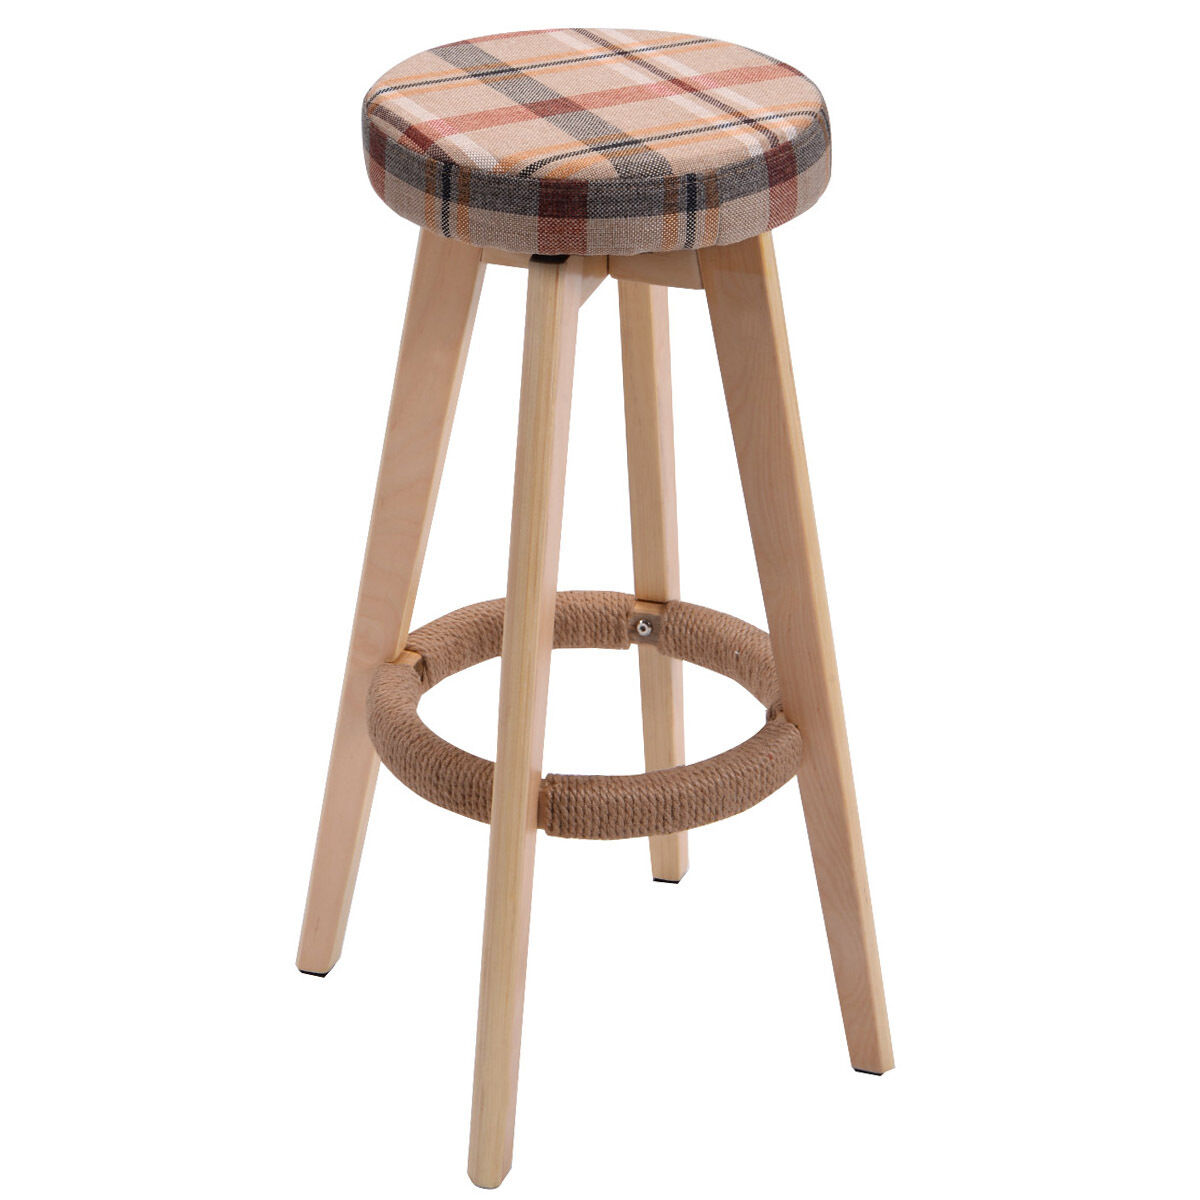 Stool Chair Round Wooden Chair Linen Bar Stool Dining Counter